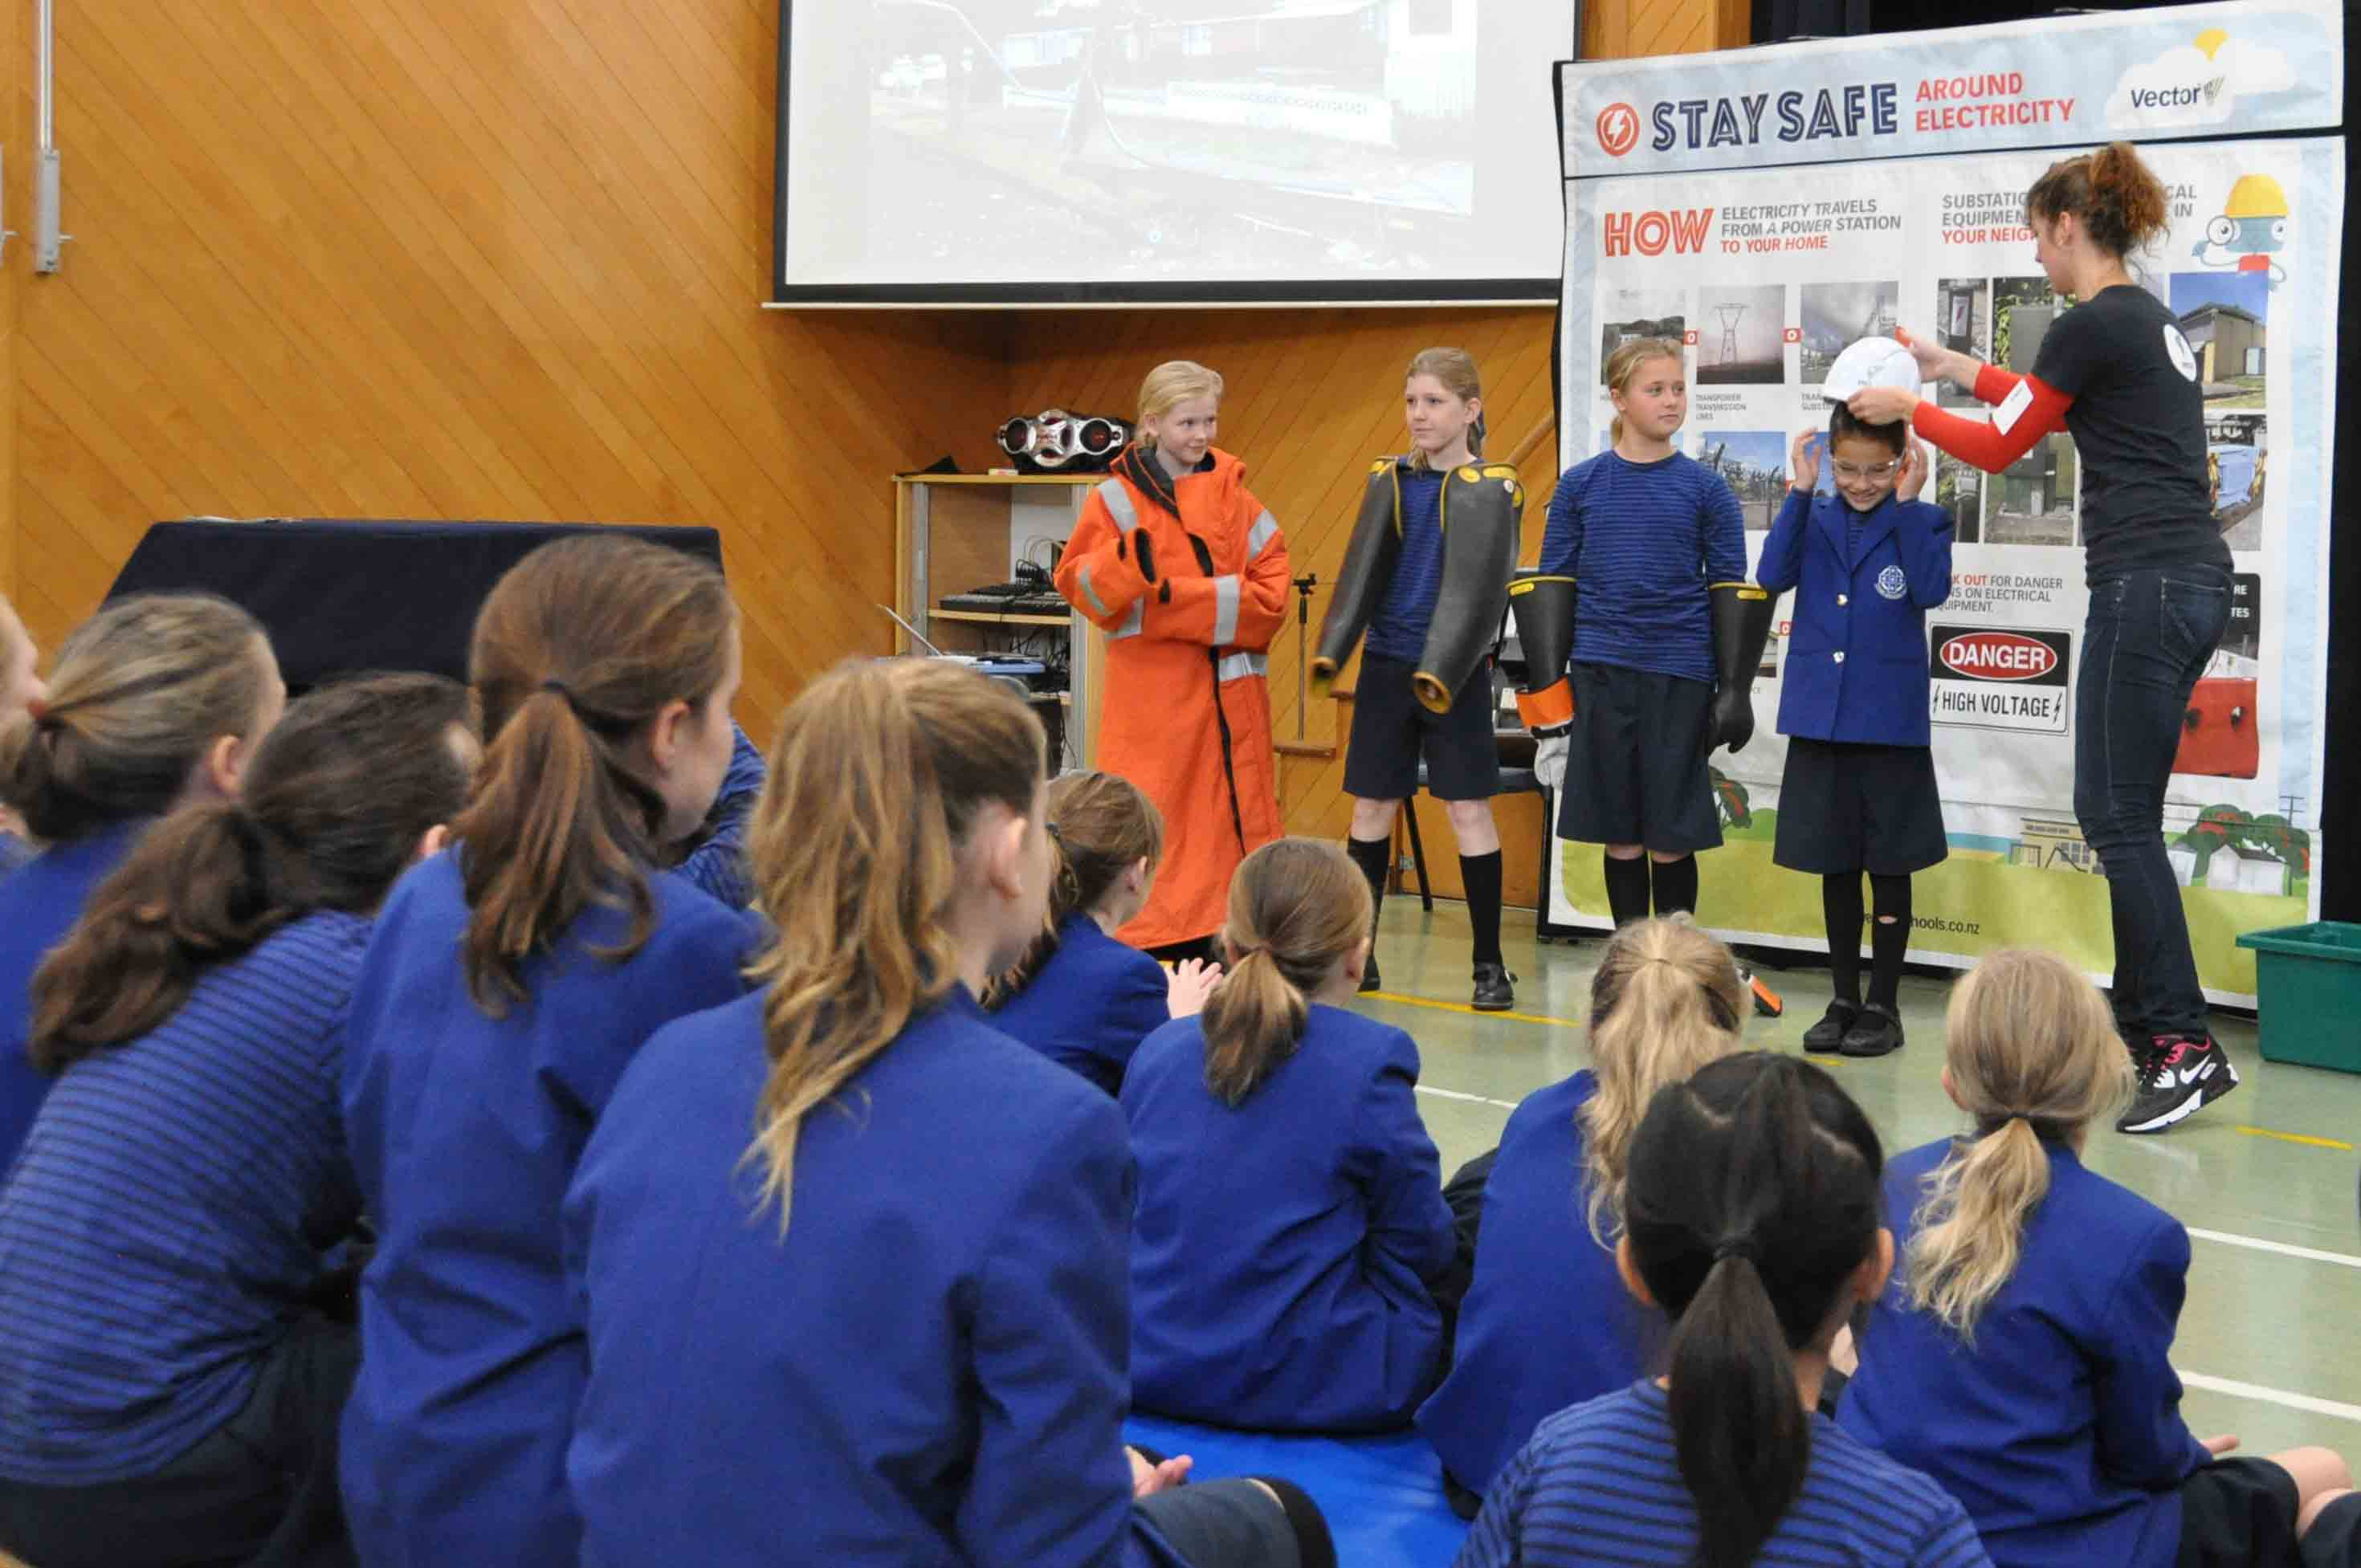 Saint-Kentigern-Girls'-School-Safety-Around-Electricity-2.jpg